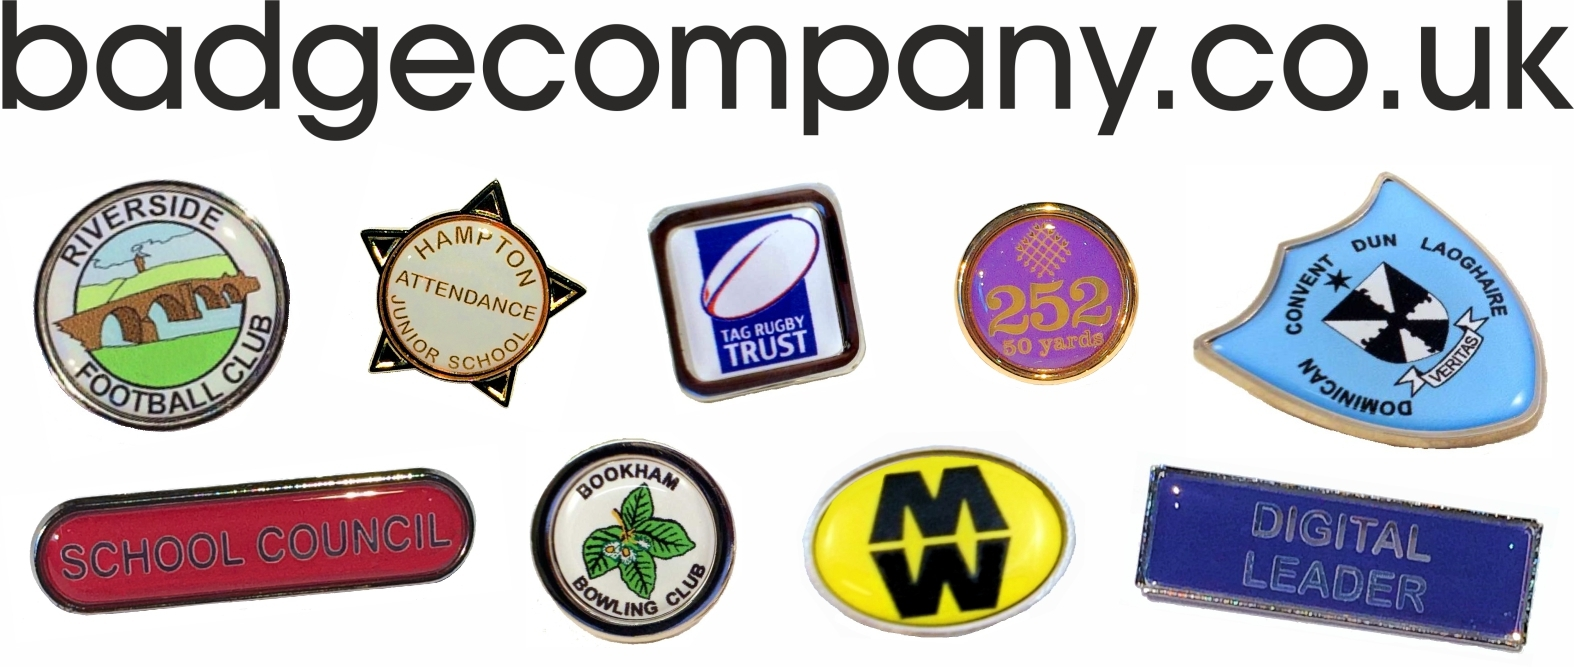 The Badge Company